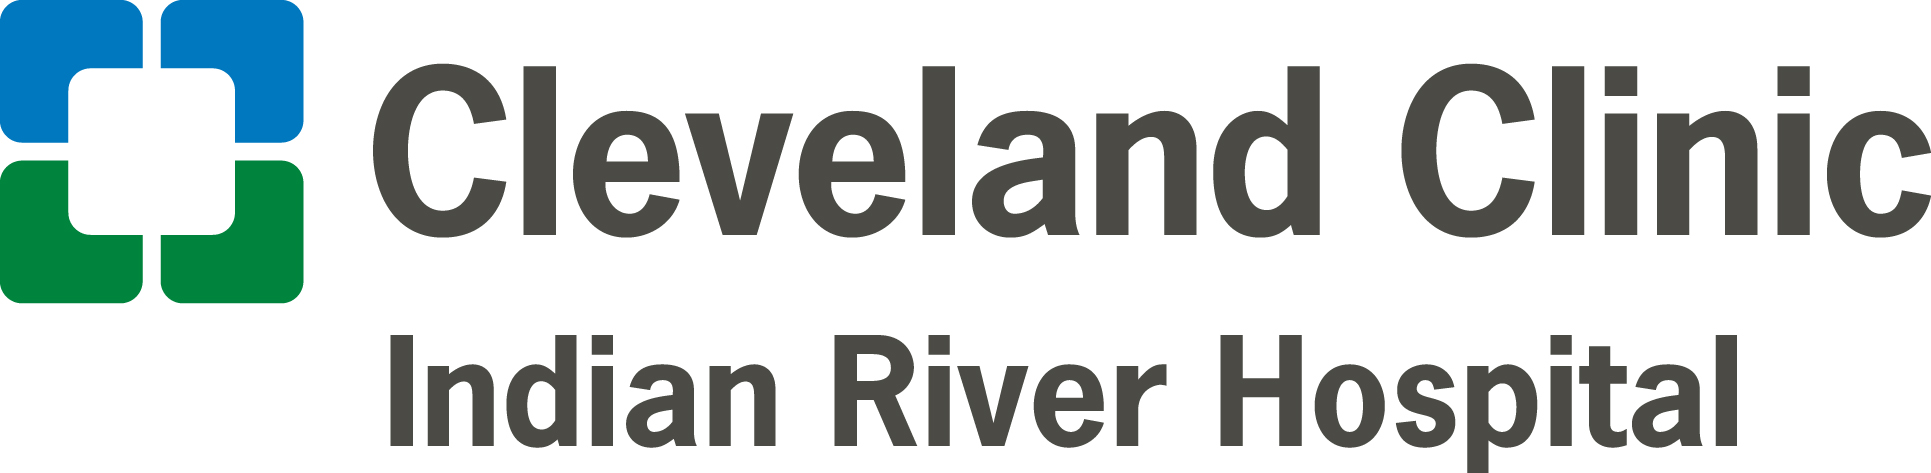 Cleveland Clinic Indian River Hospital .